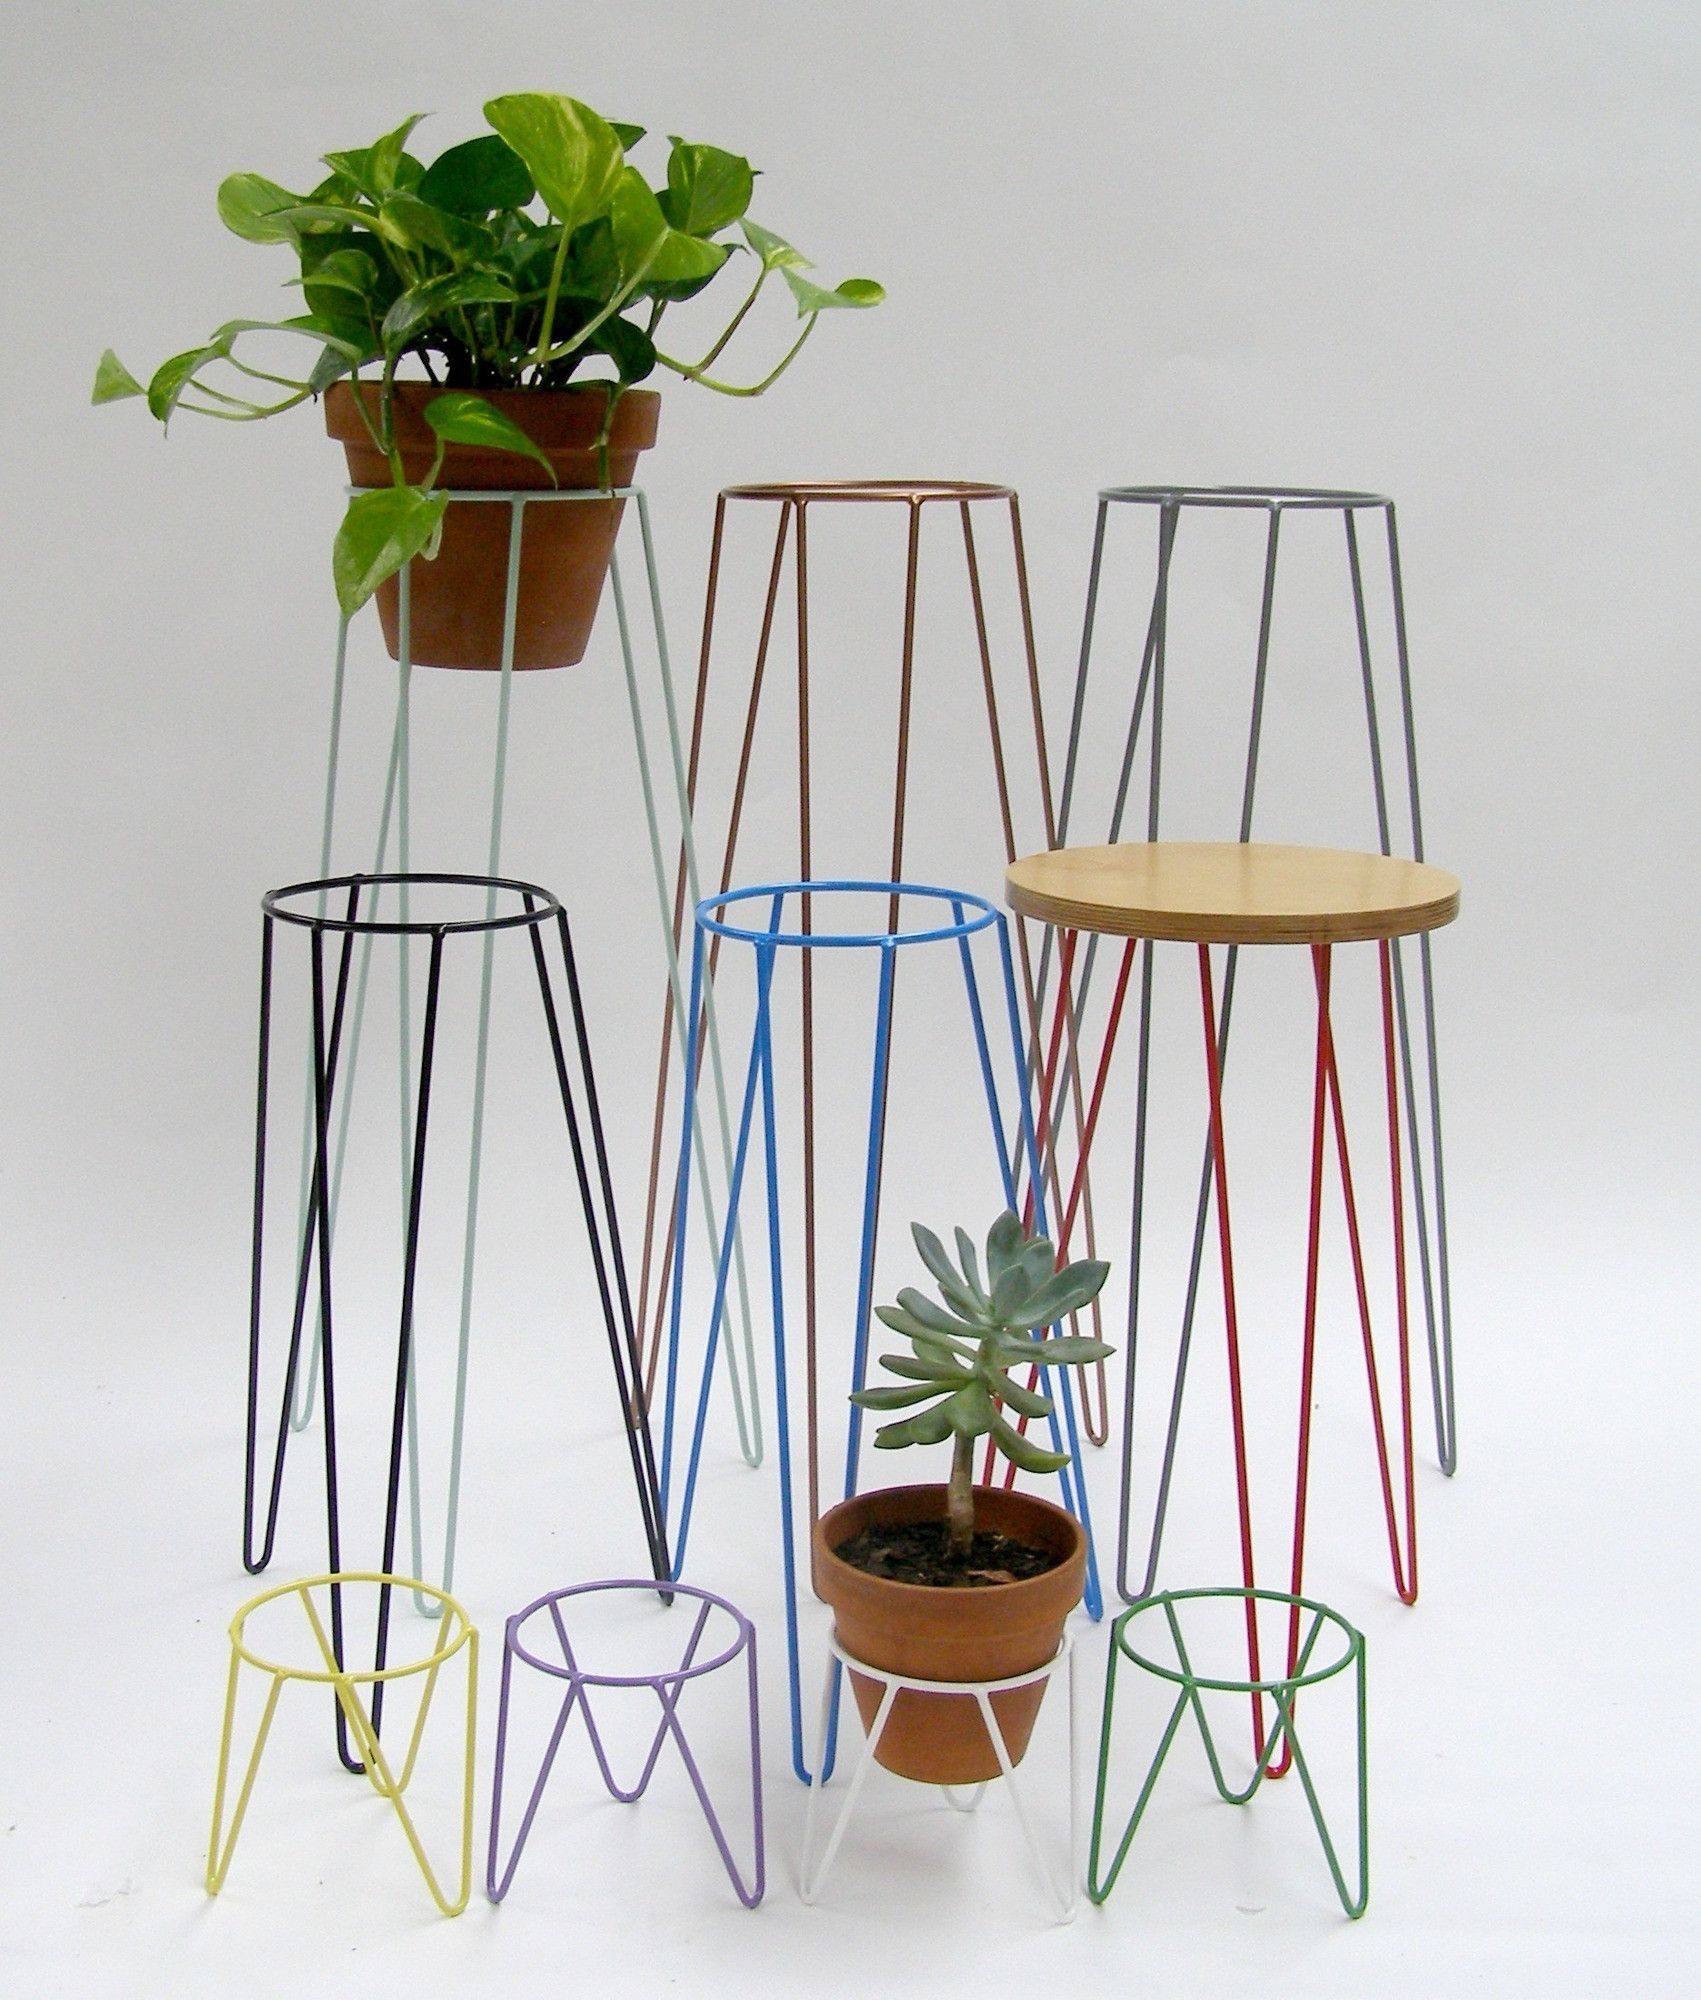 plant stand in 2019 things i like plants metal plant. Black Bedroom Furniture Sets. Home Design Ideas